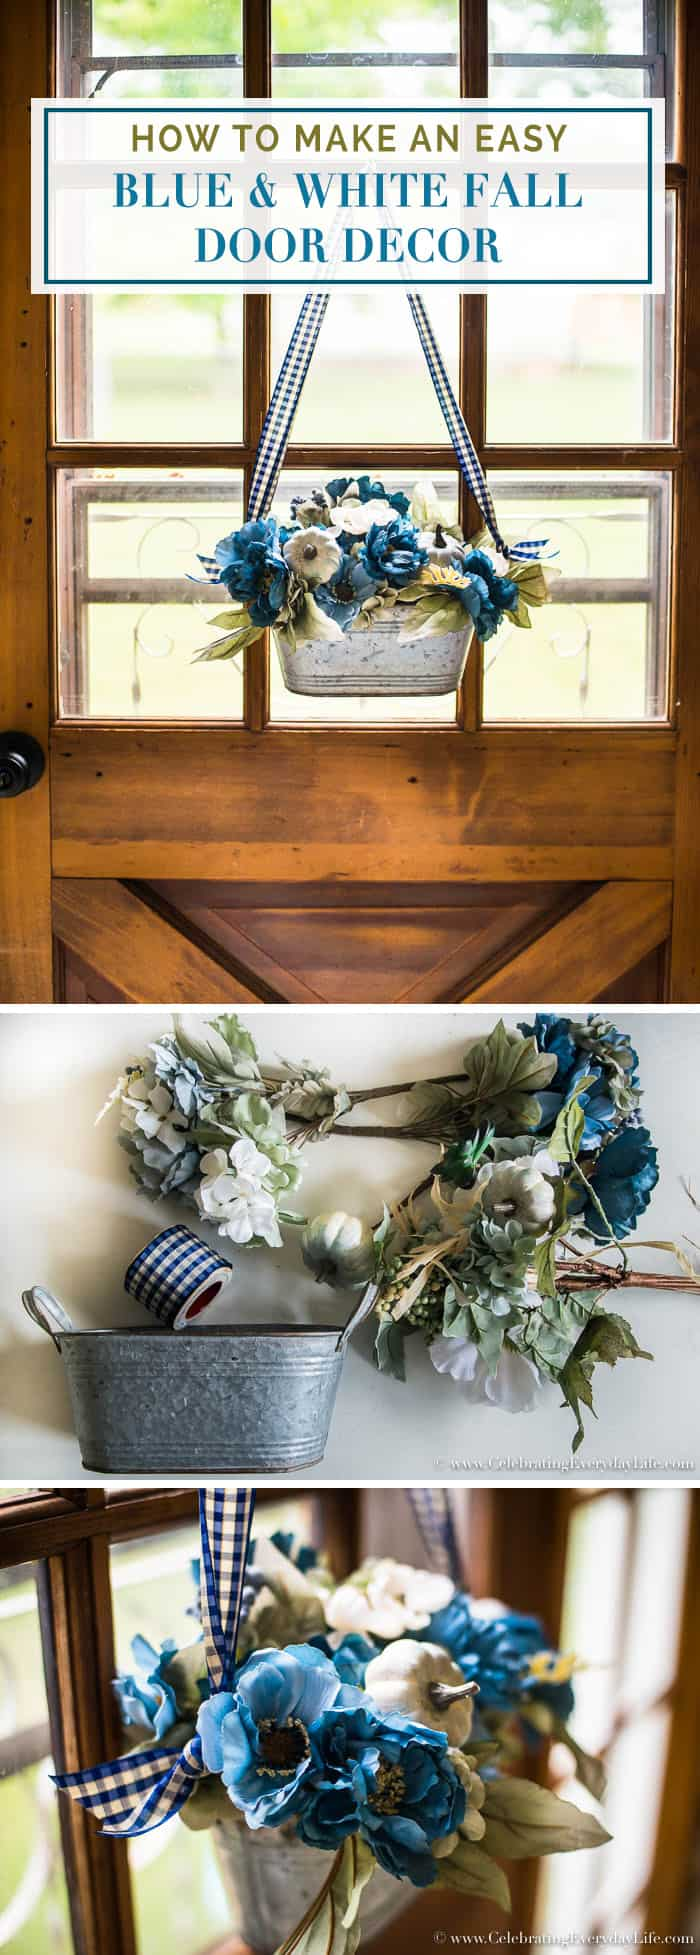 It's that time of year! Let me show you how to Make an Easy Blue And White Fall Door Decor in minutes! No special skills required!